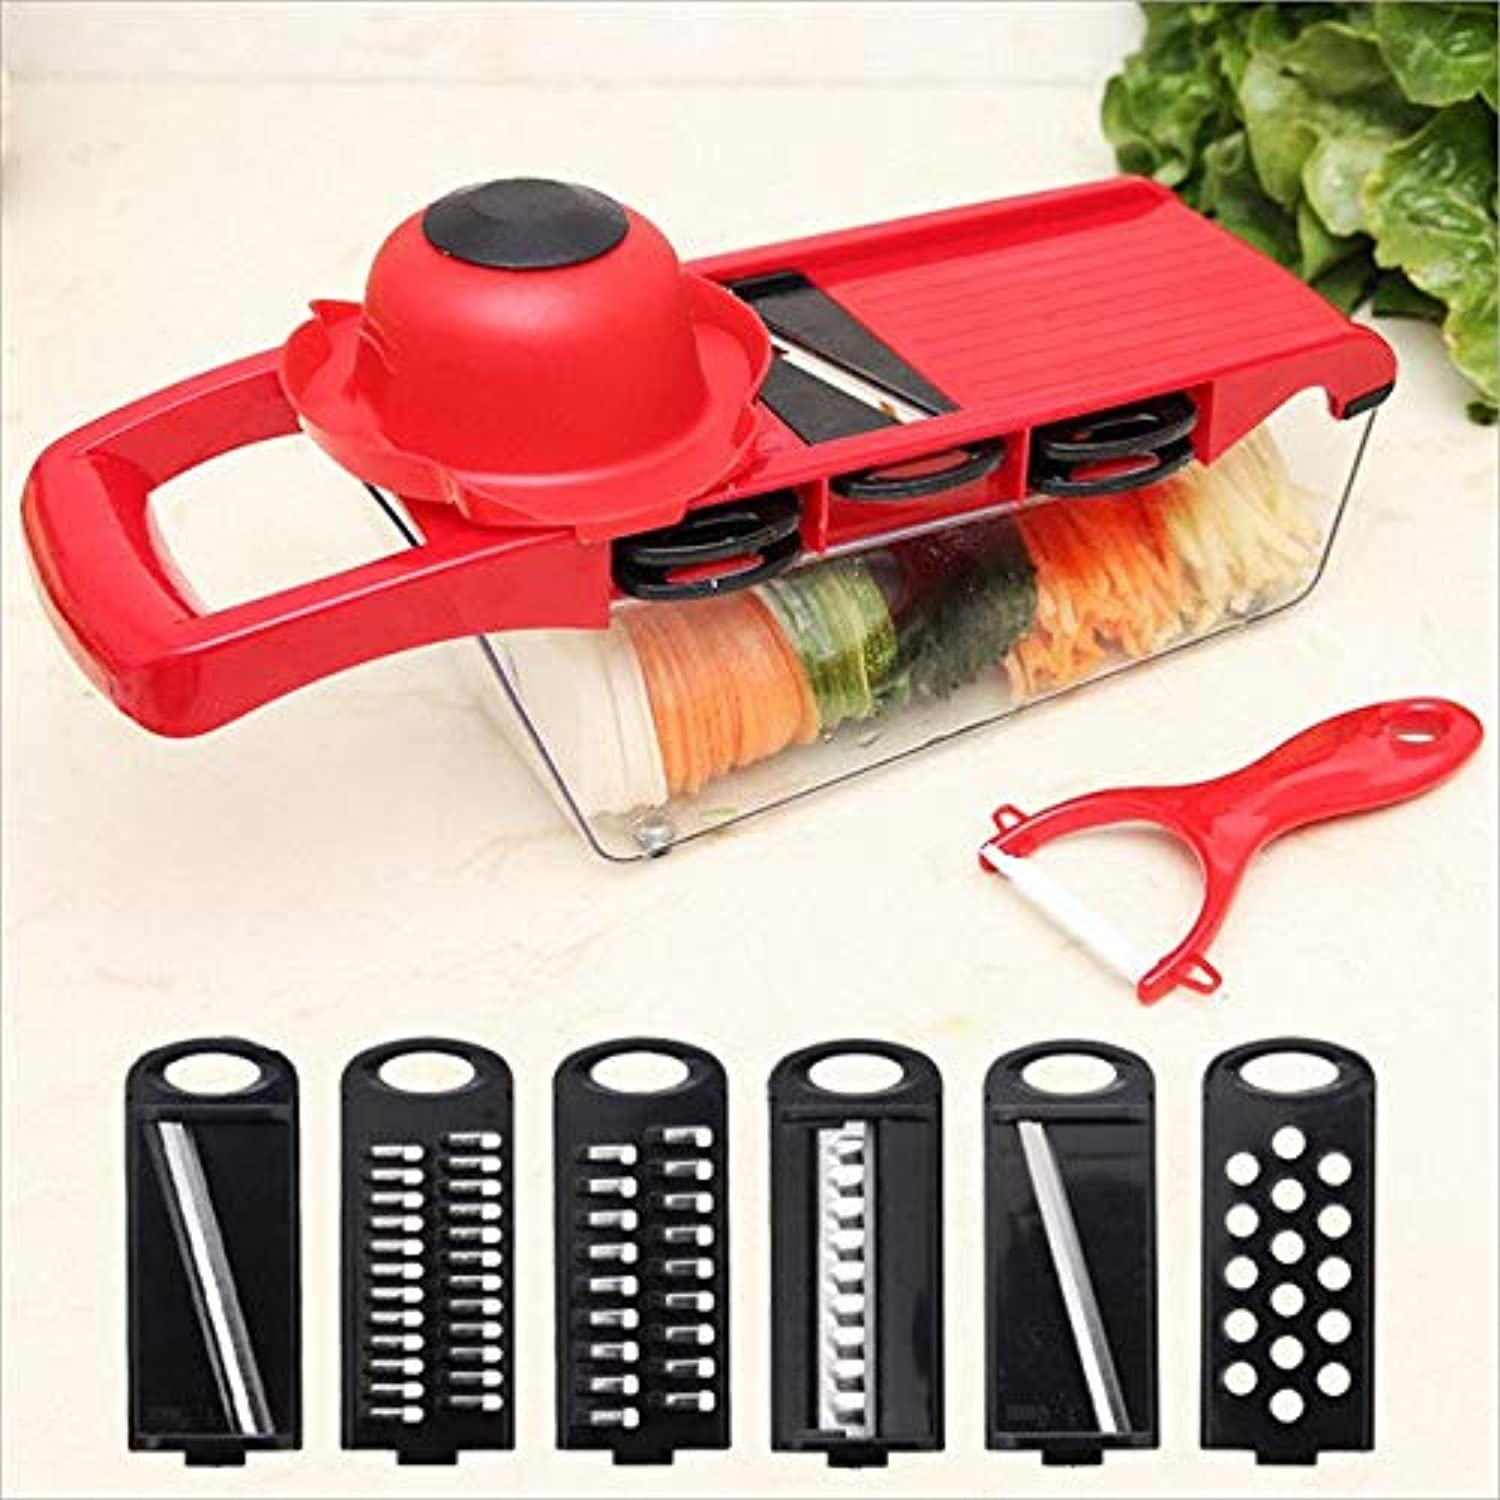 Multi-funtional Grater Vegetable Utter Food ontainer hredder lr AU